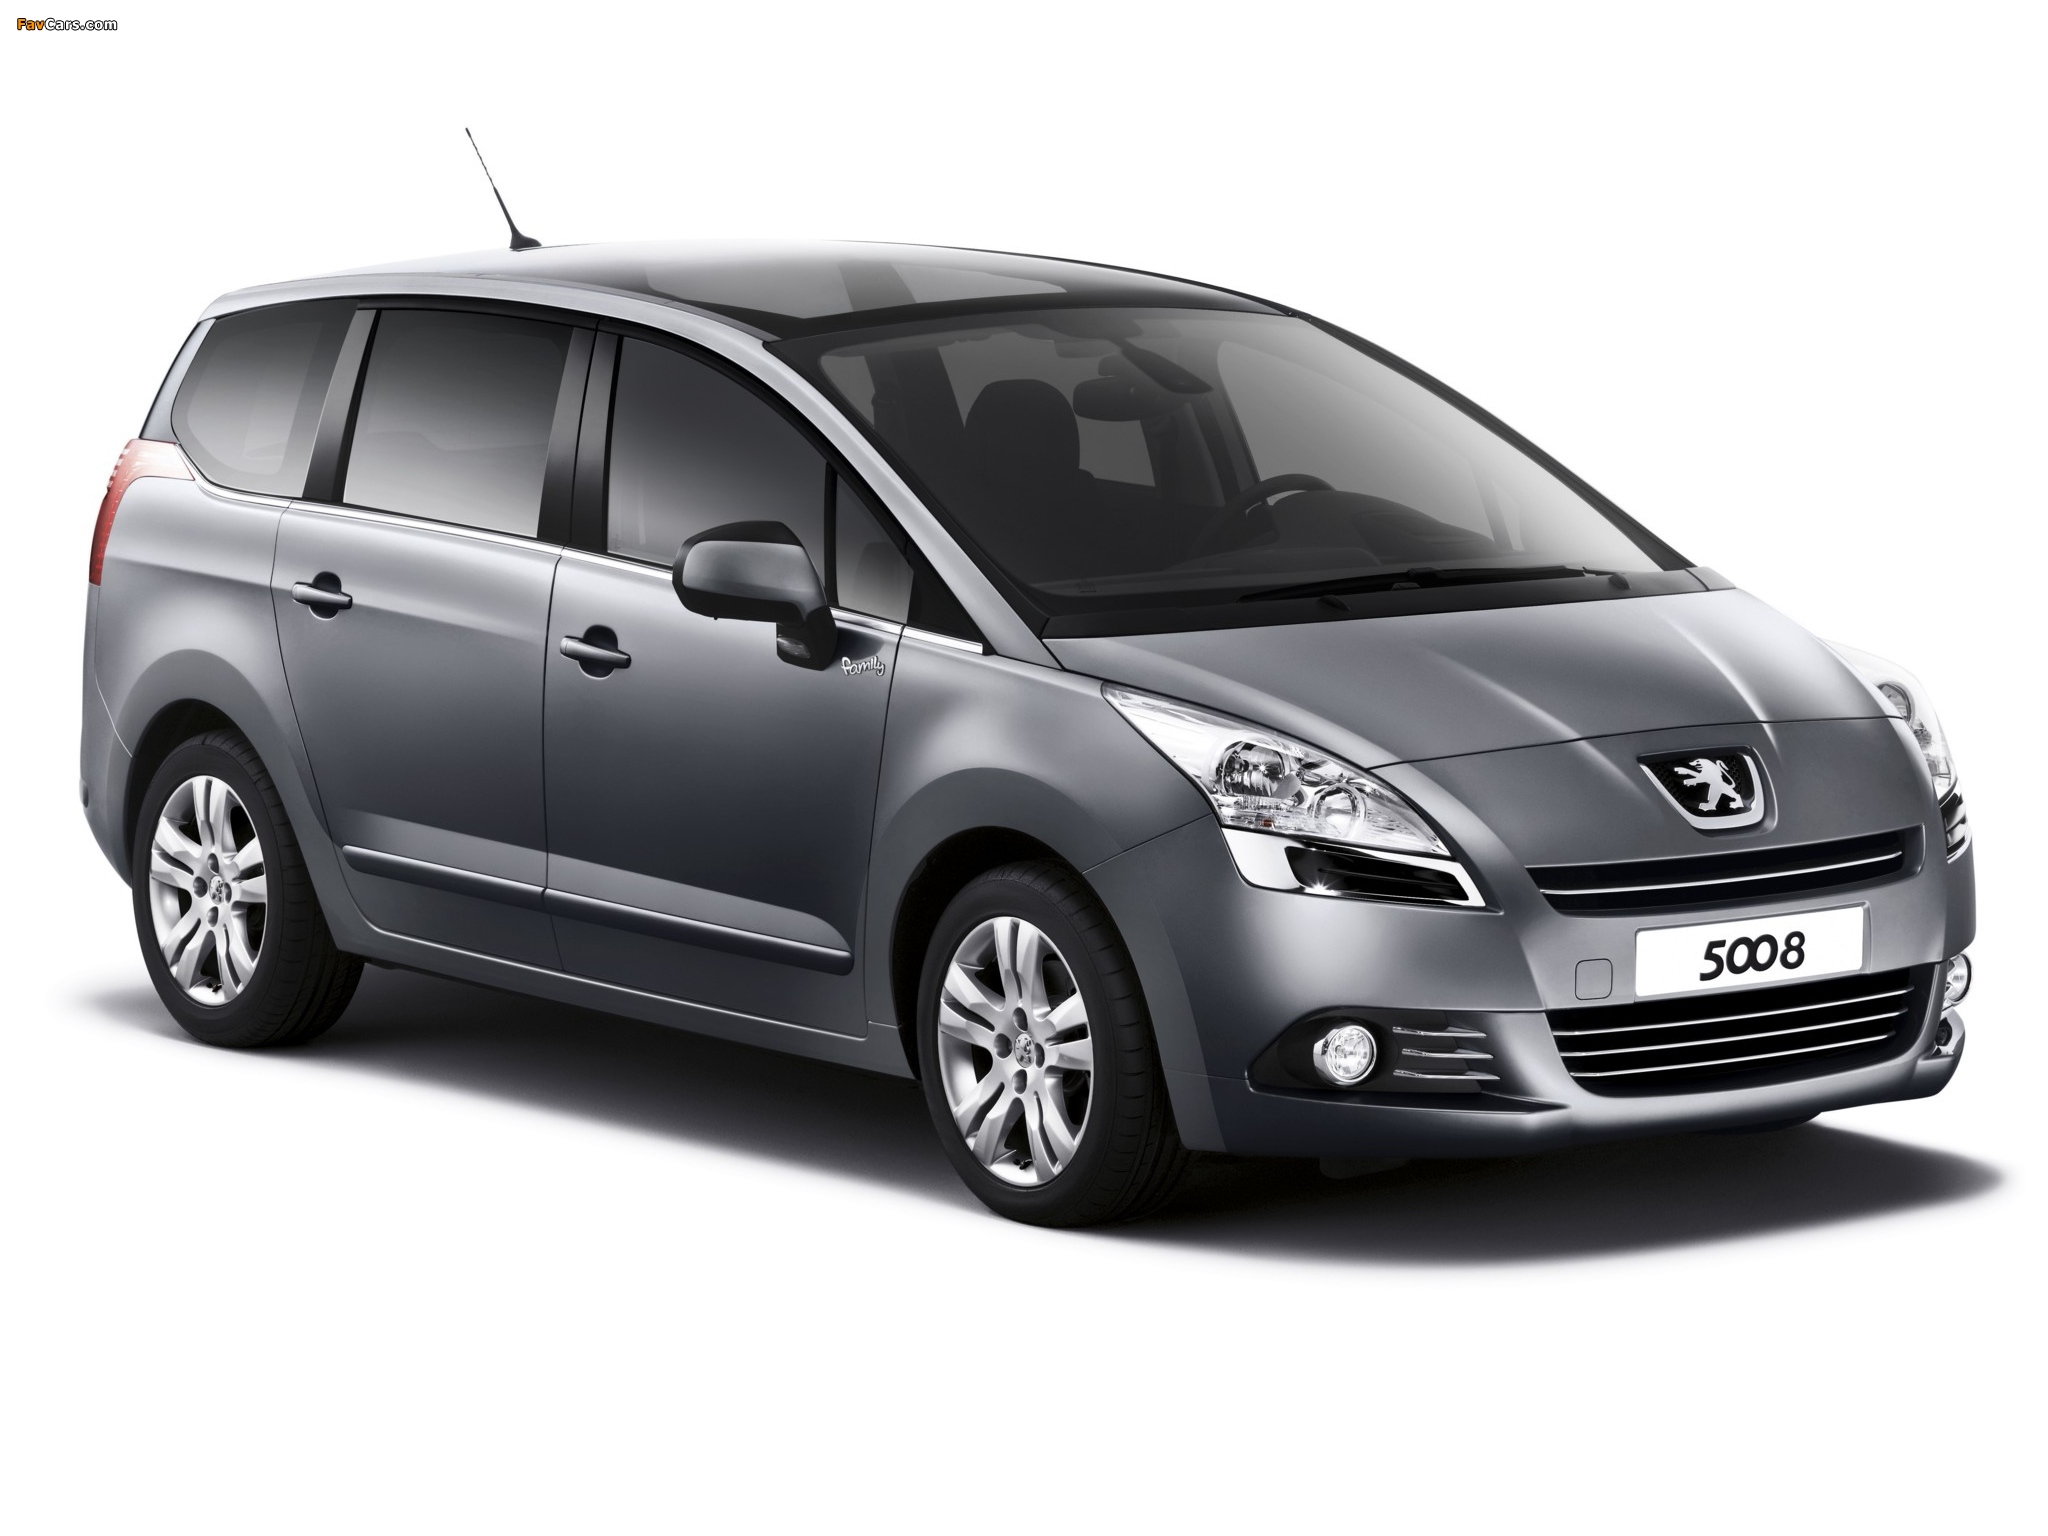 2011 peugeot 5008 pictures information and specs auto. Black Bedroom Furniture Sets. Home Design Ideas